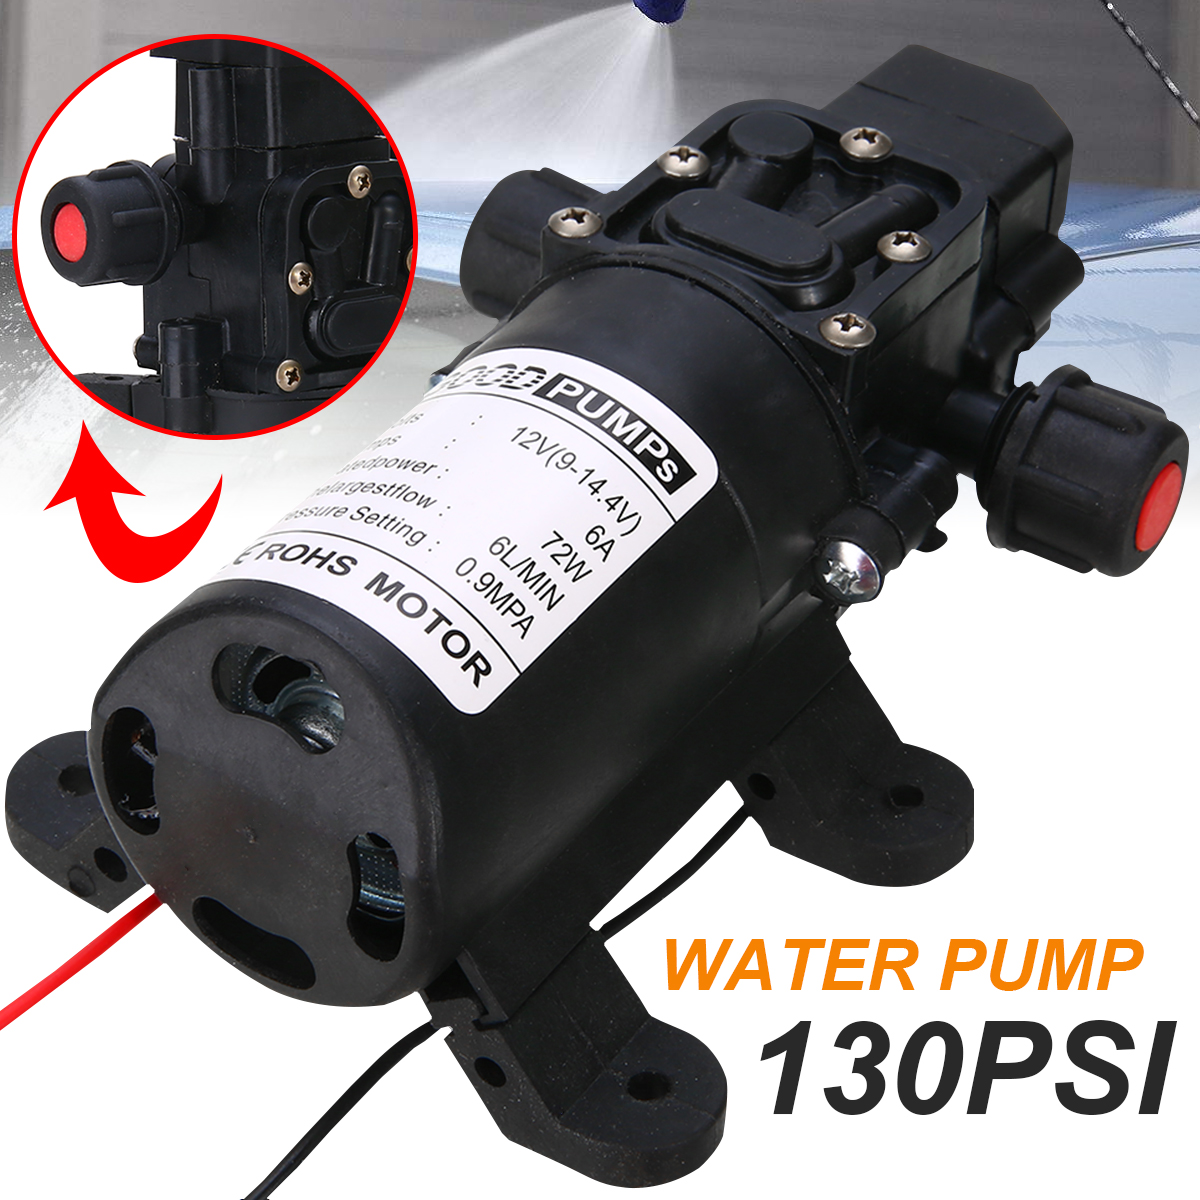 1Pc 6L/Min Small Diaphragm Water Pump 12V DC 70W 130PSI Self Priming High Pressure Water Pumps For Car Washing